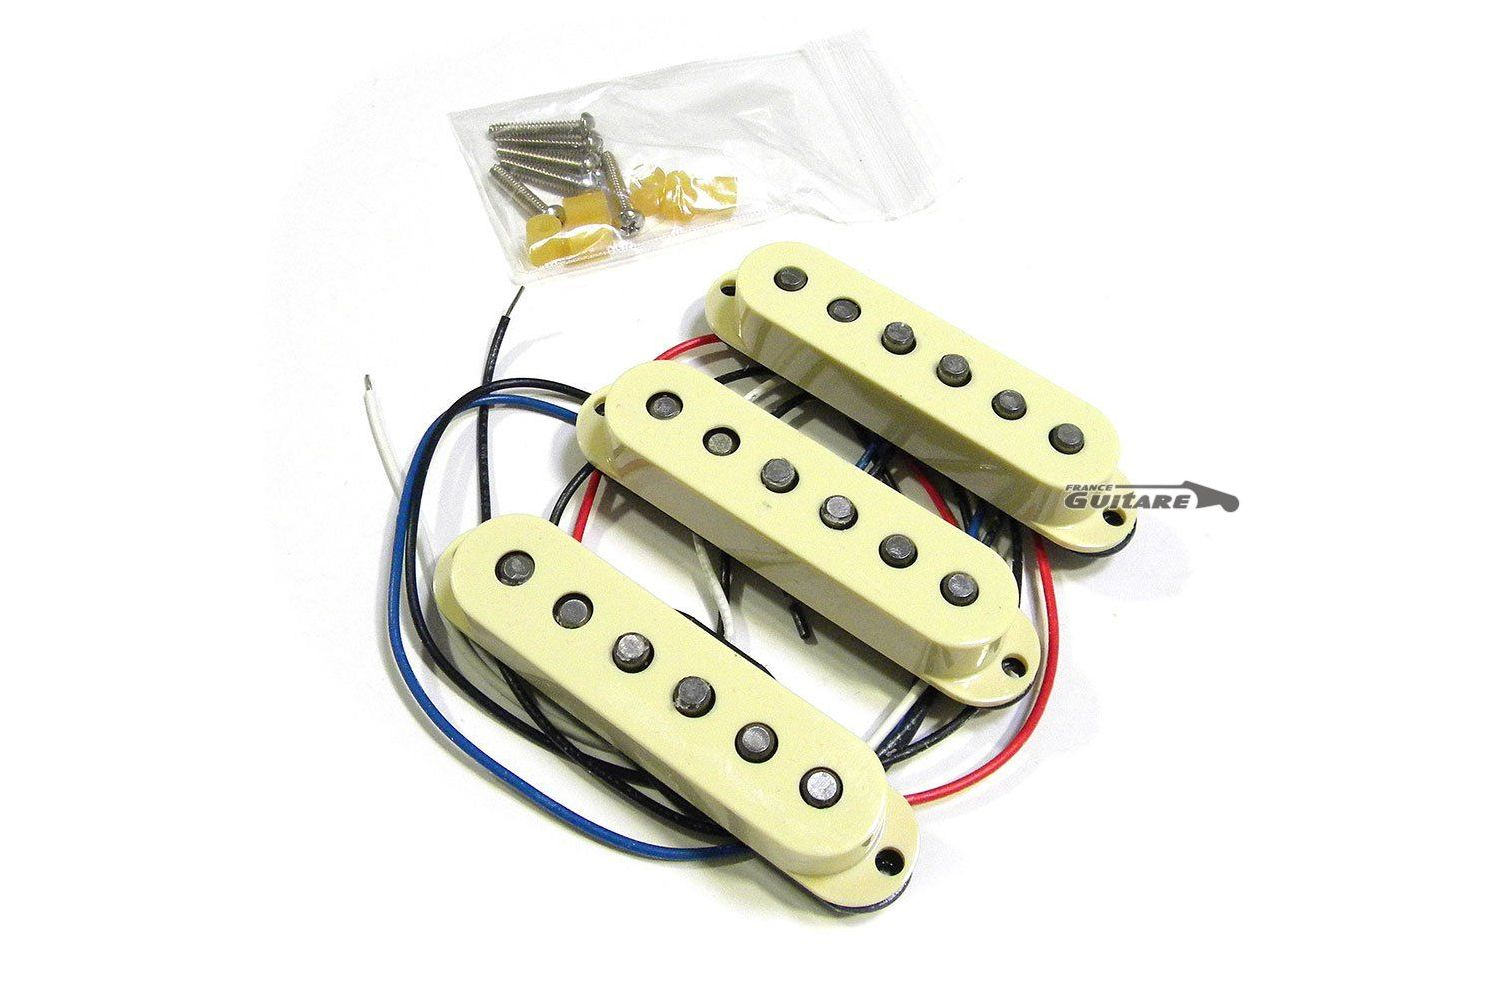 jeu de micros fender stratocaster v mod pickup set. Black Bedroom Furniture Sets. Home Design Ideas